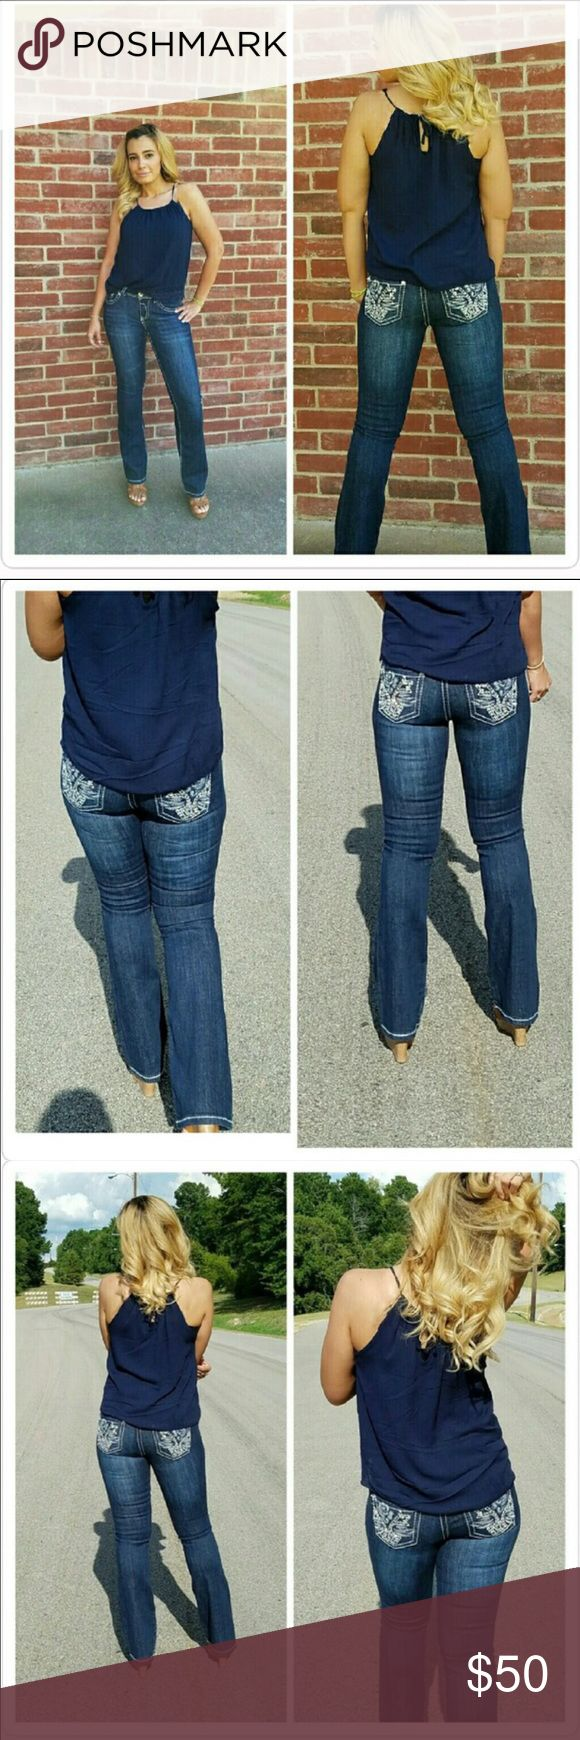 Sassy Rose Embellished Jeans Mid rise, boot cut denim jeans with embroidery and stud, rhinestones detail on back pockets, rhinestone rivets, and contrast top stitch detail. Sizes are 1, 3, 5, 7, 9, 13. Fabric 96% cotton 4% Spandex. TTS-Price Firm-No Trades. Jeans Boot Cut